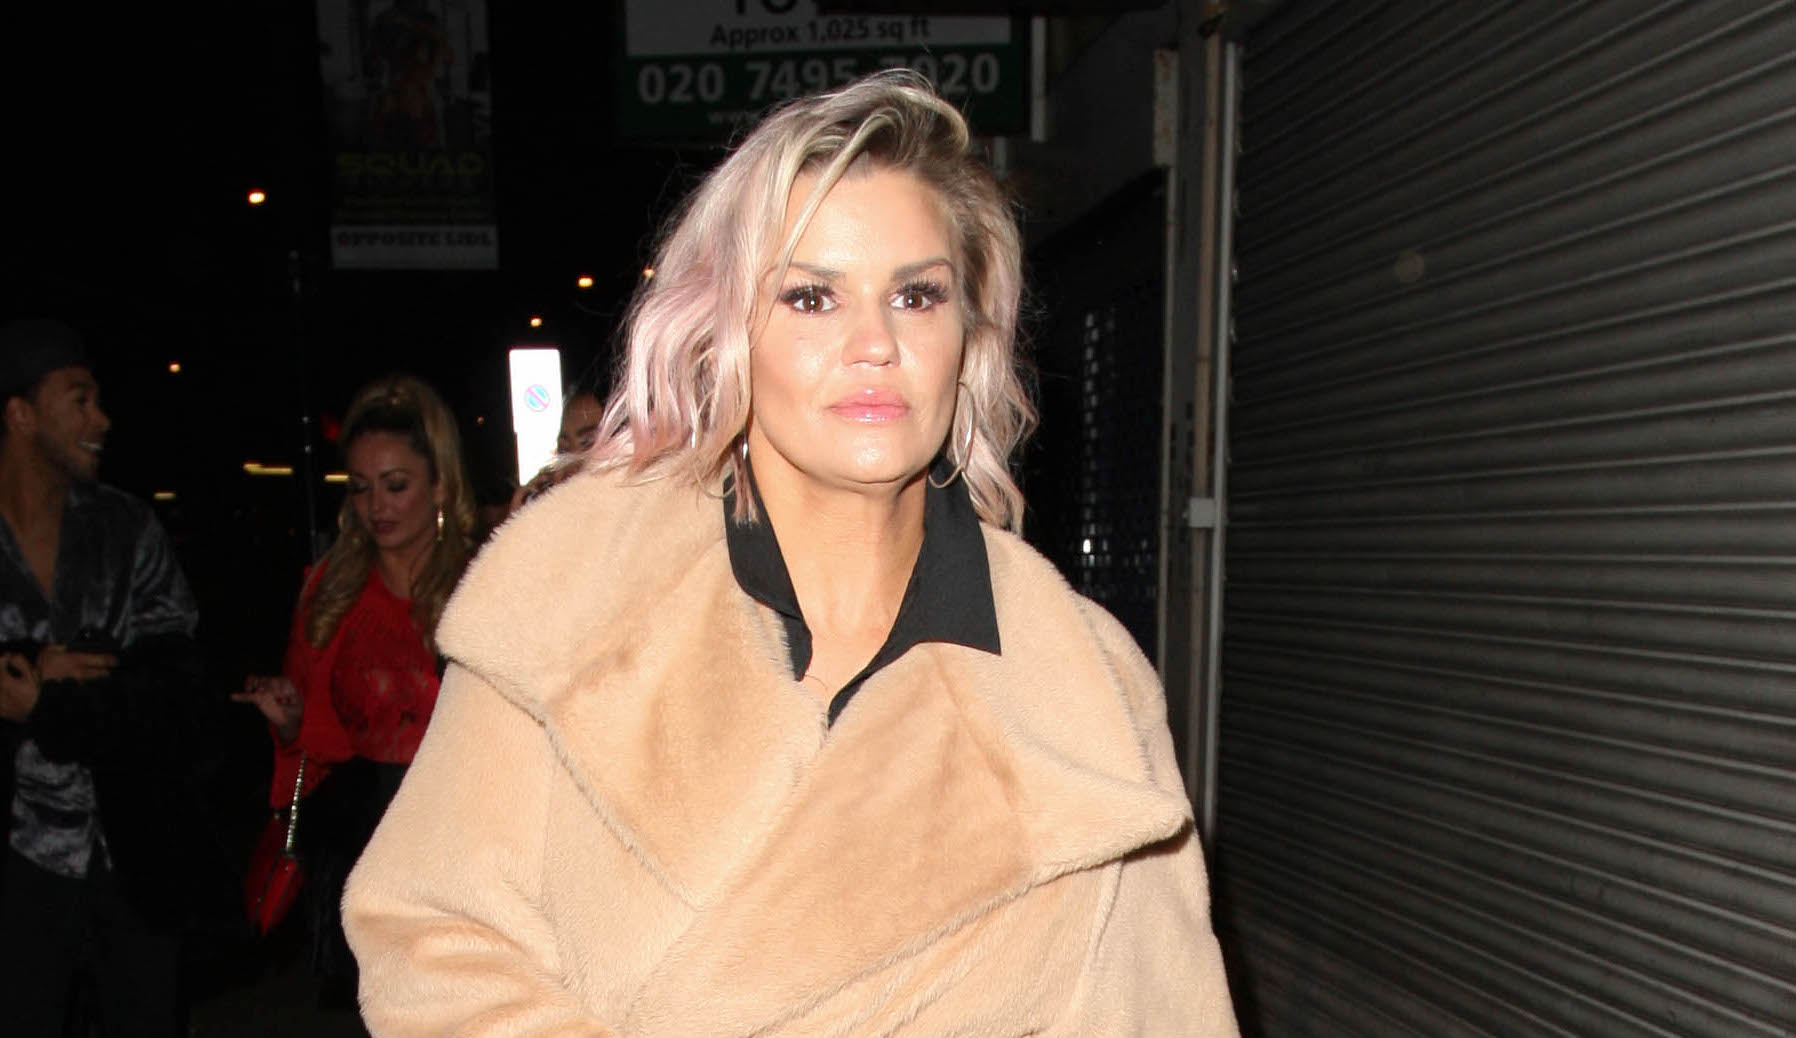 Kerry Katona claims she has spoken to late ex George Kay from 'beyond the grave'